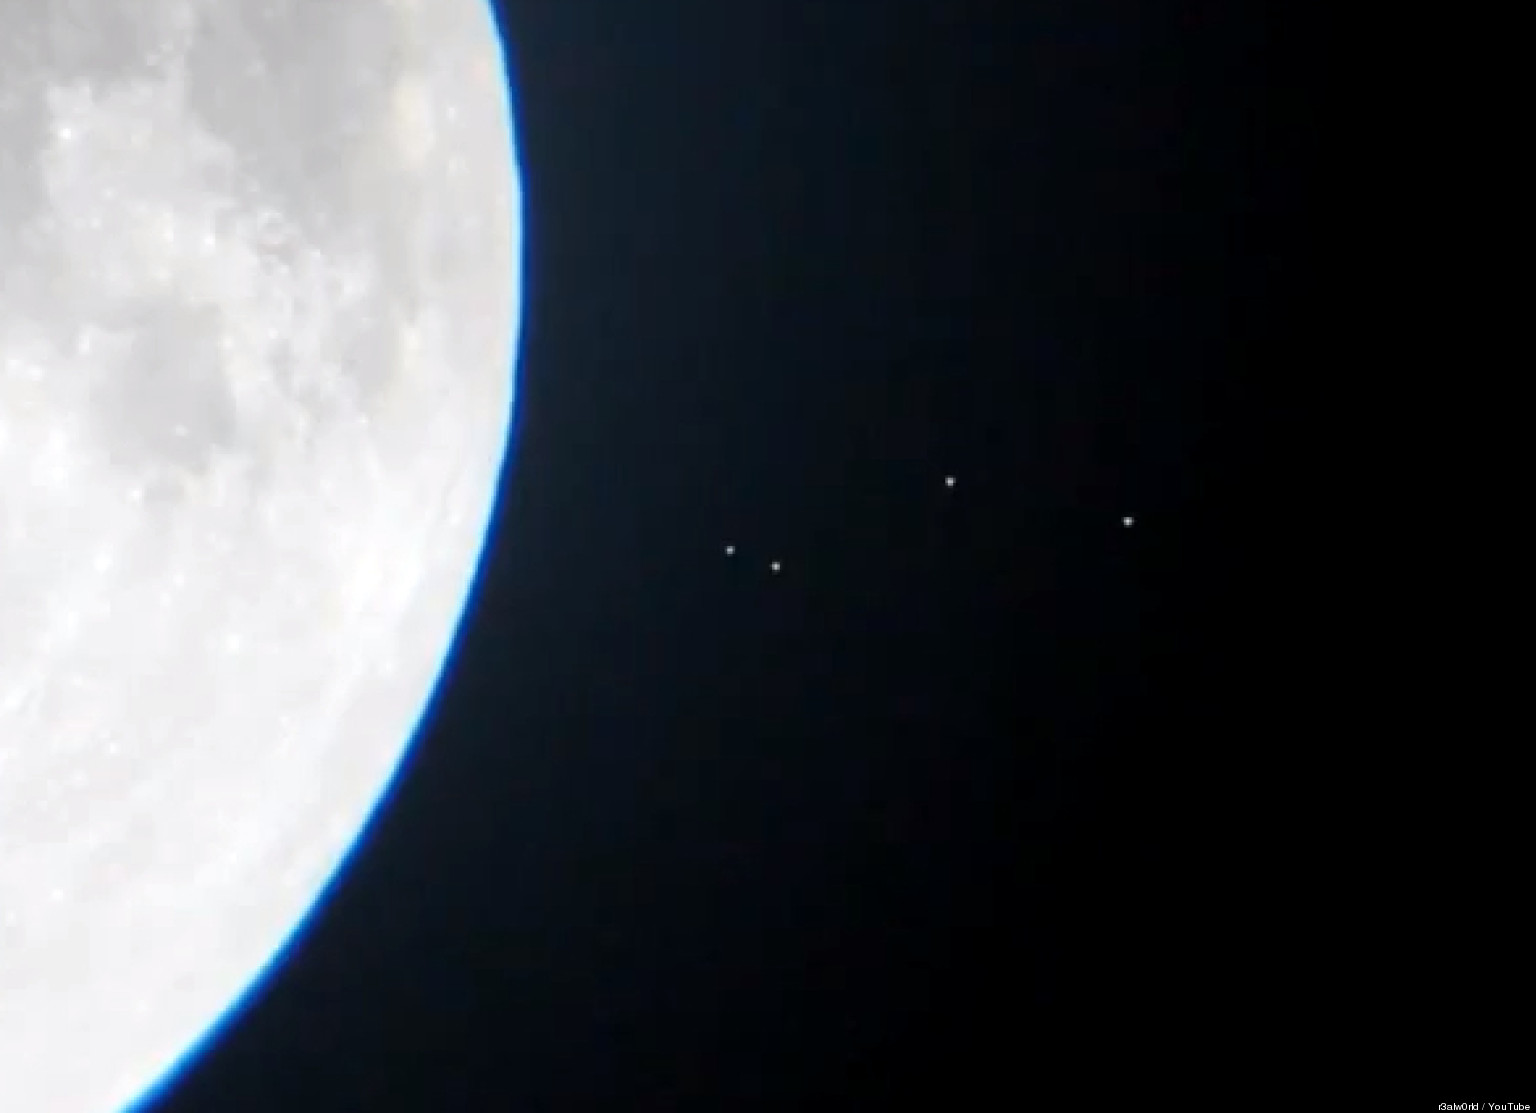 UFOs On The Moon: Scientists, Astronauts And YouTube Users ...